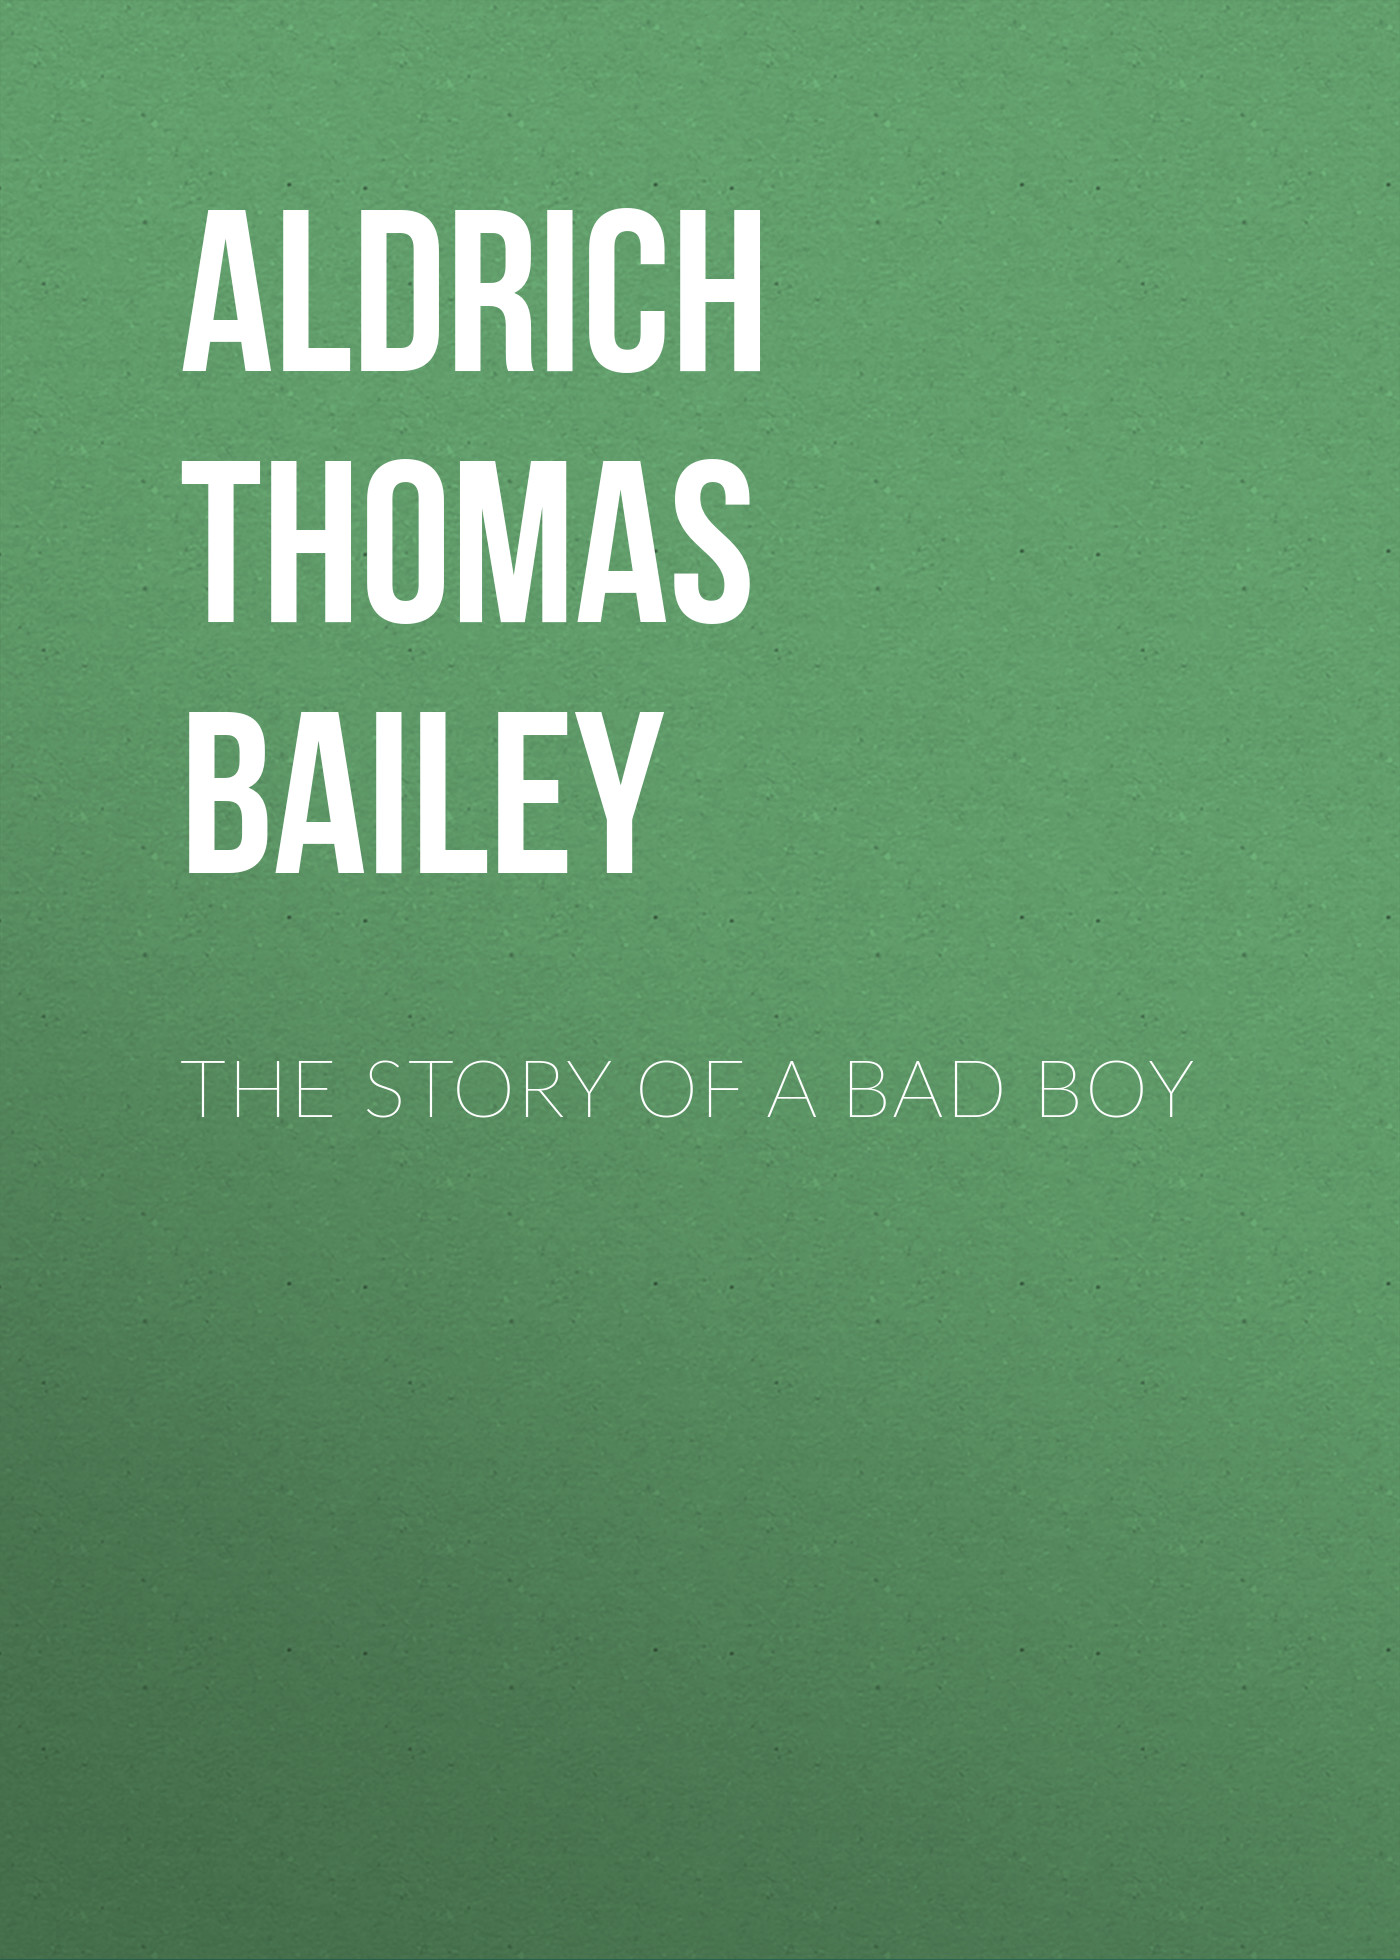 Aldrich Thomas Bailey The Story of a Bad Boy derek bailey and the story of free improvisation